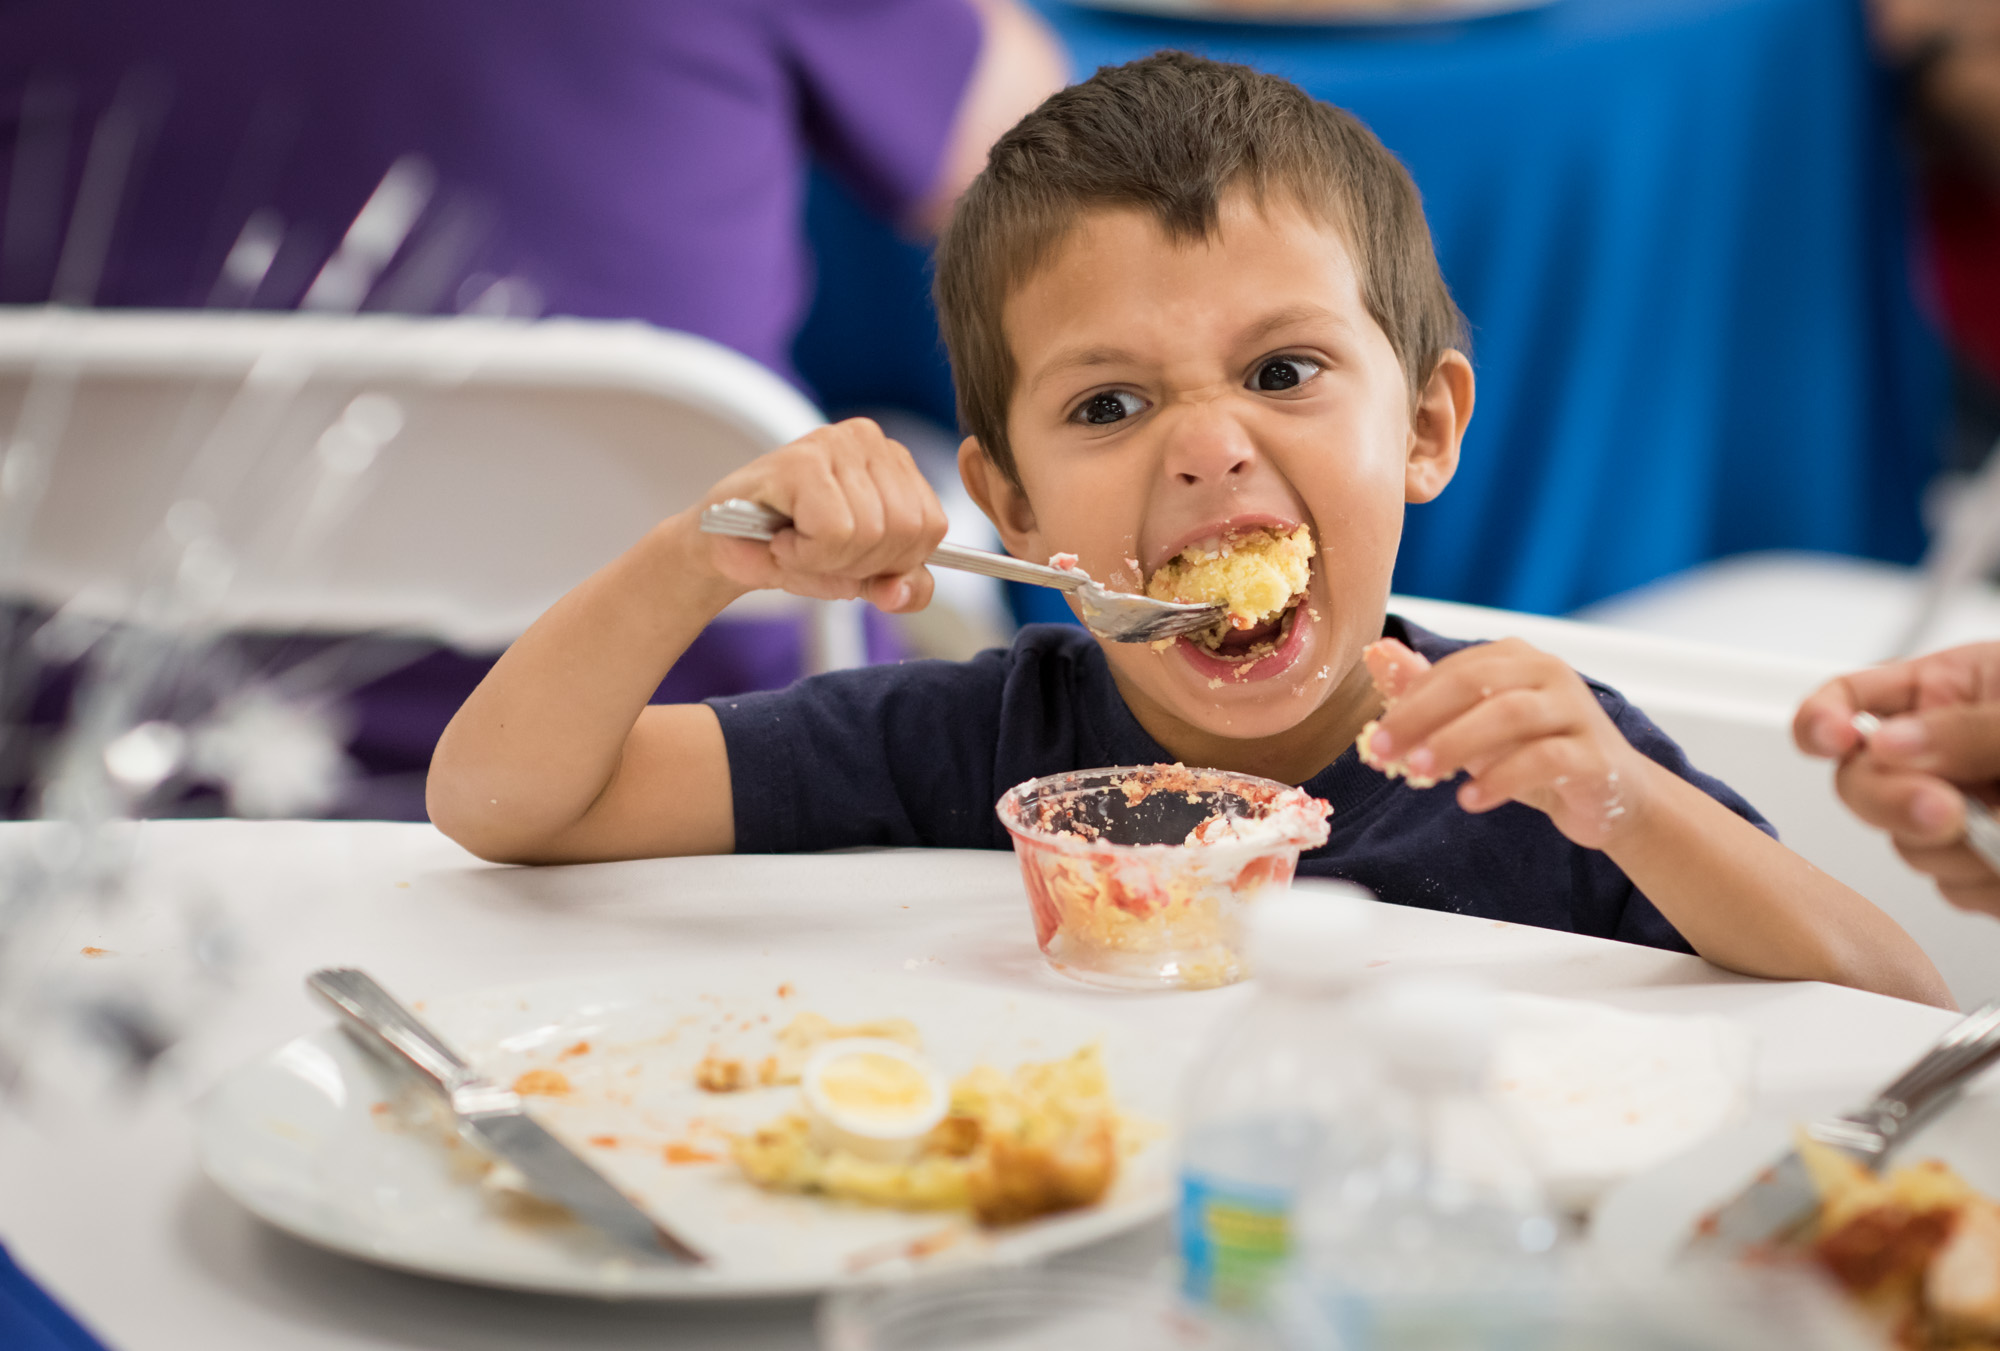 A young boy eating dessert at the trauma awareness luncheon